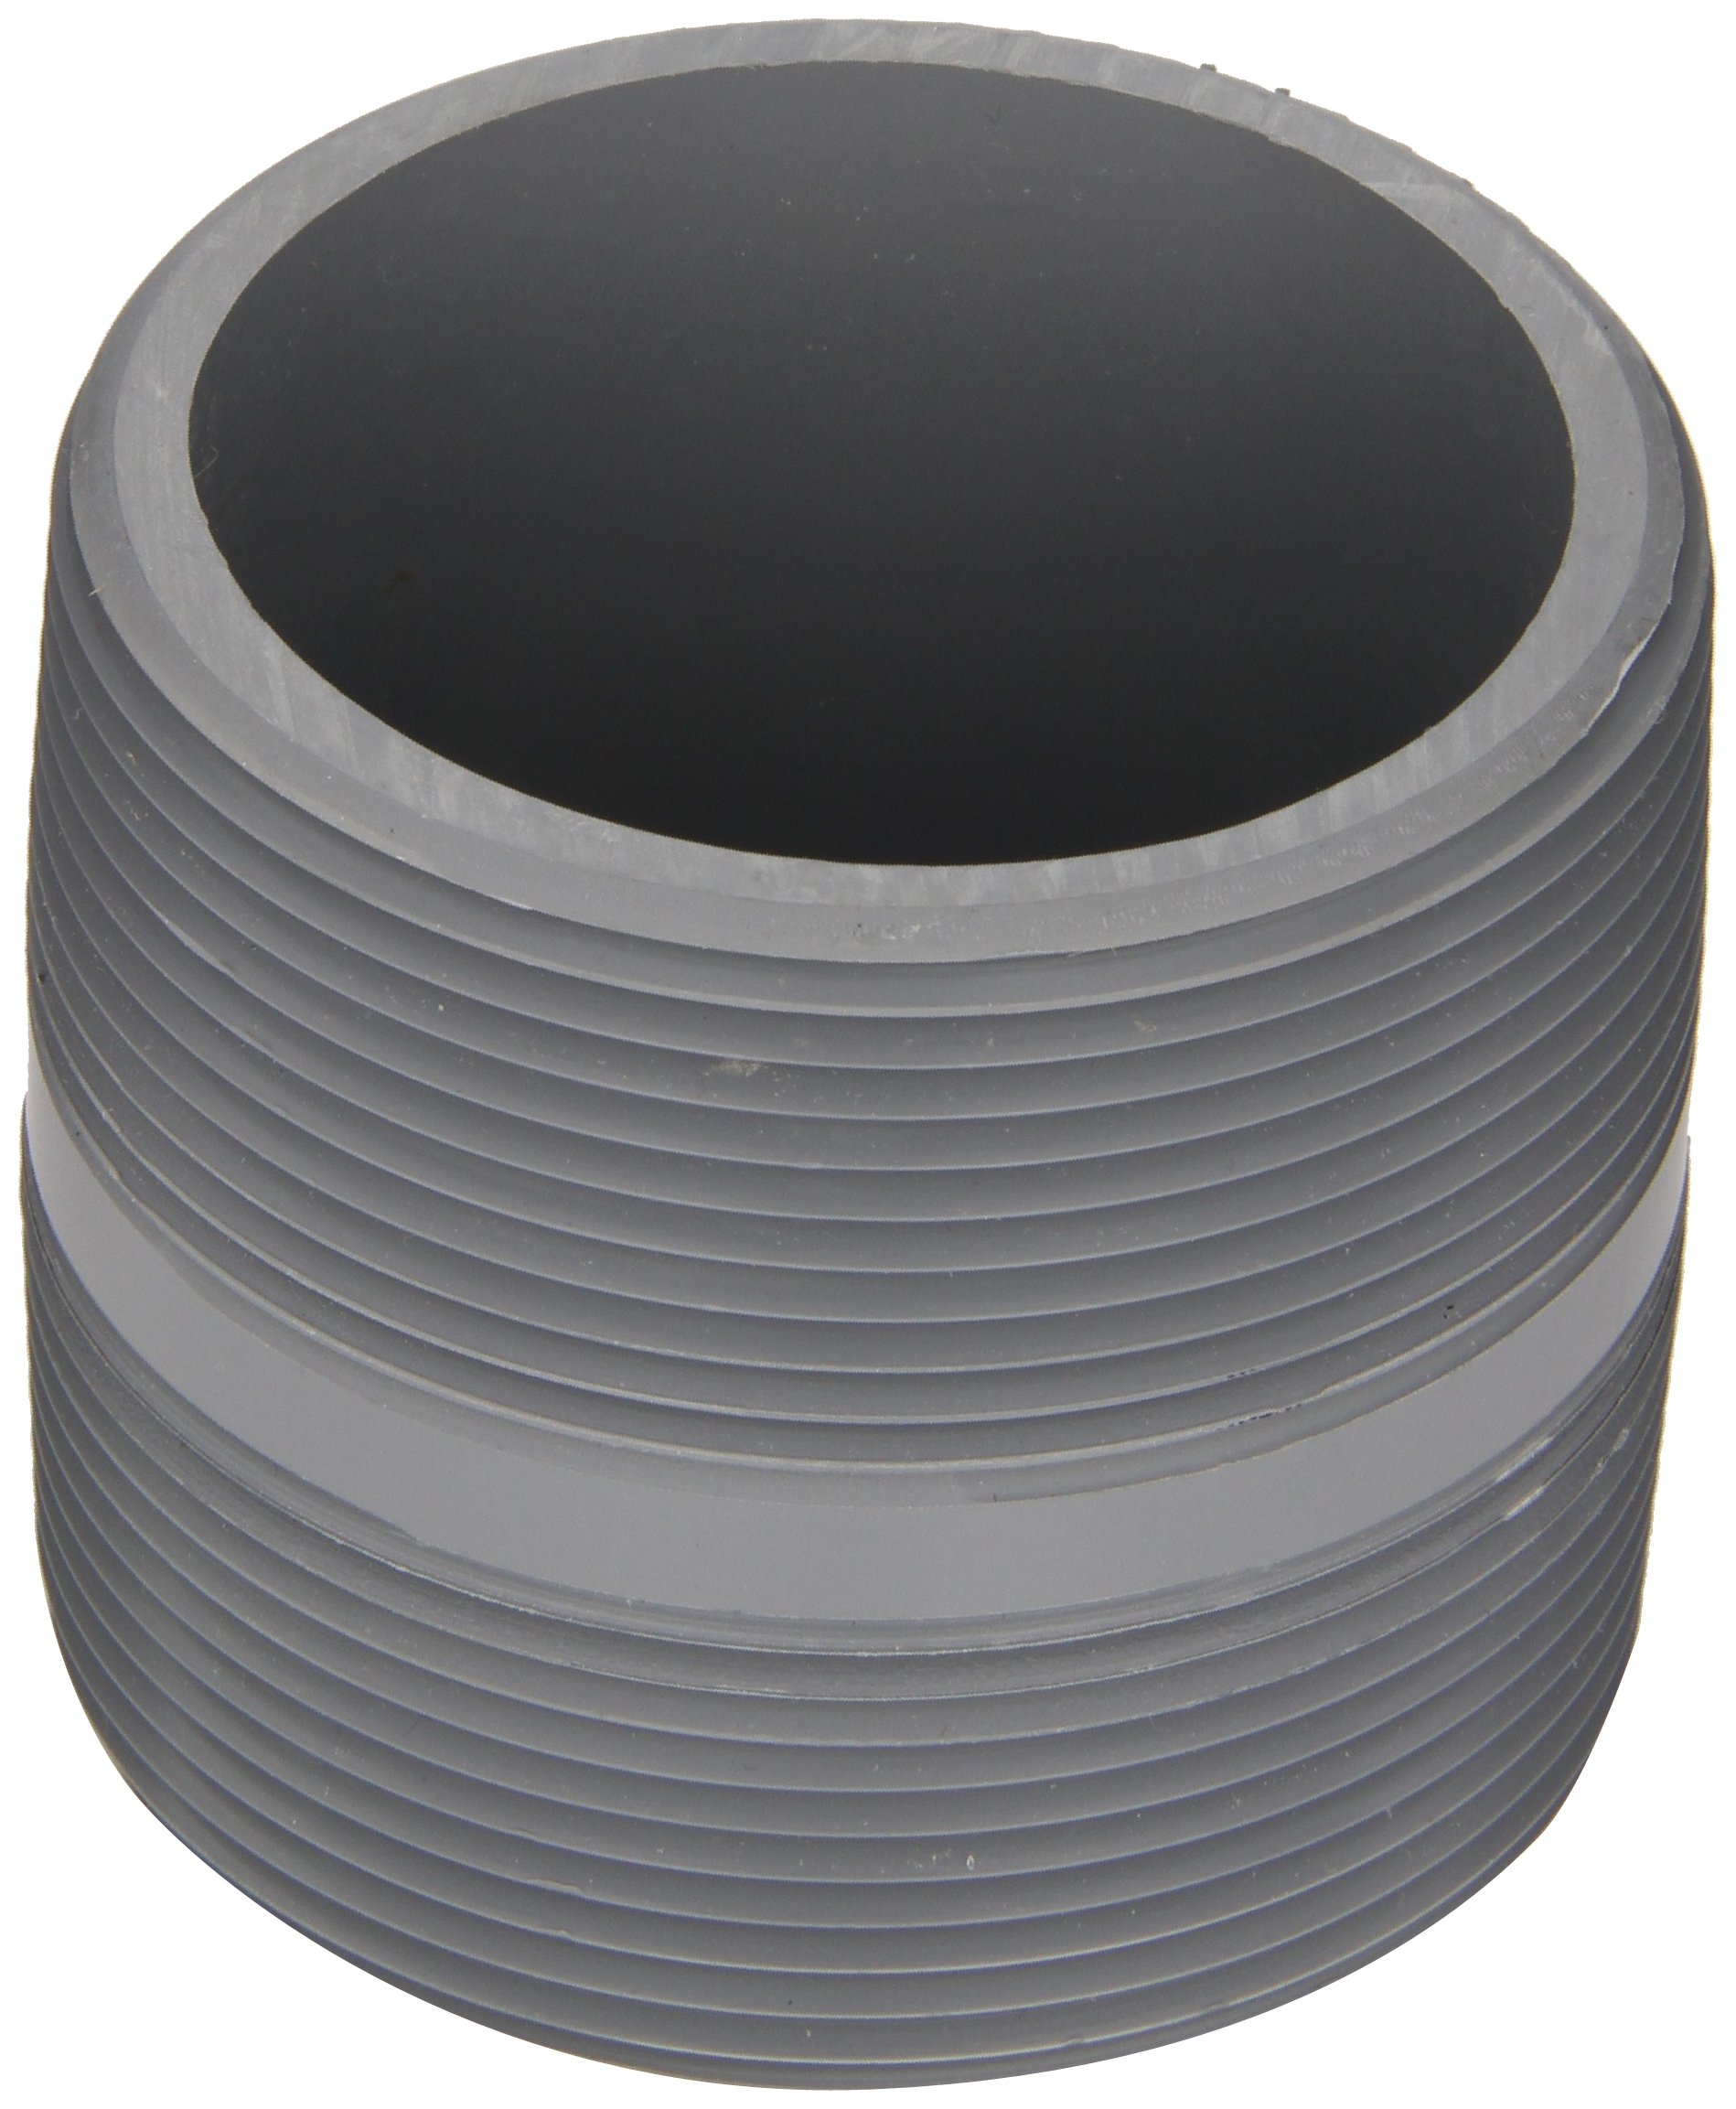 Spears 88-C Series CPVC Pipe Fitting, Nipple, Schedule 80, Gray, 3'' NPT Male, 3'' Length